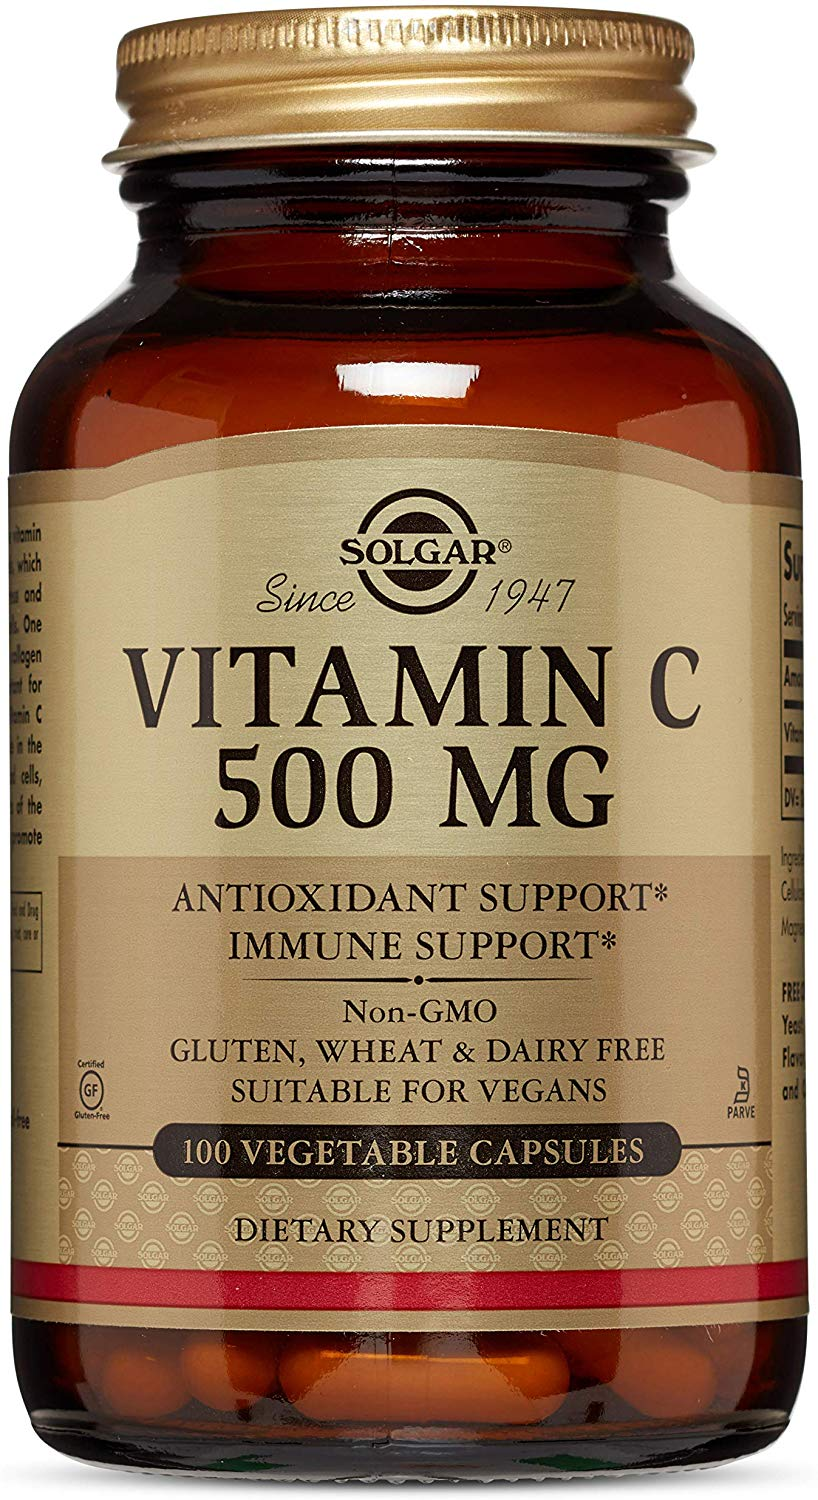 Vitamin C 500mg 100ct - PNC Maine